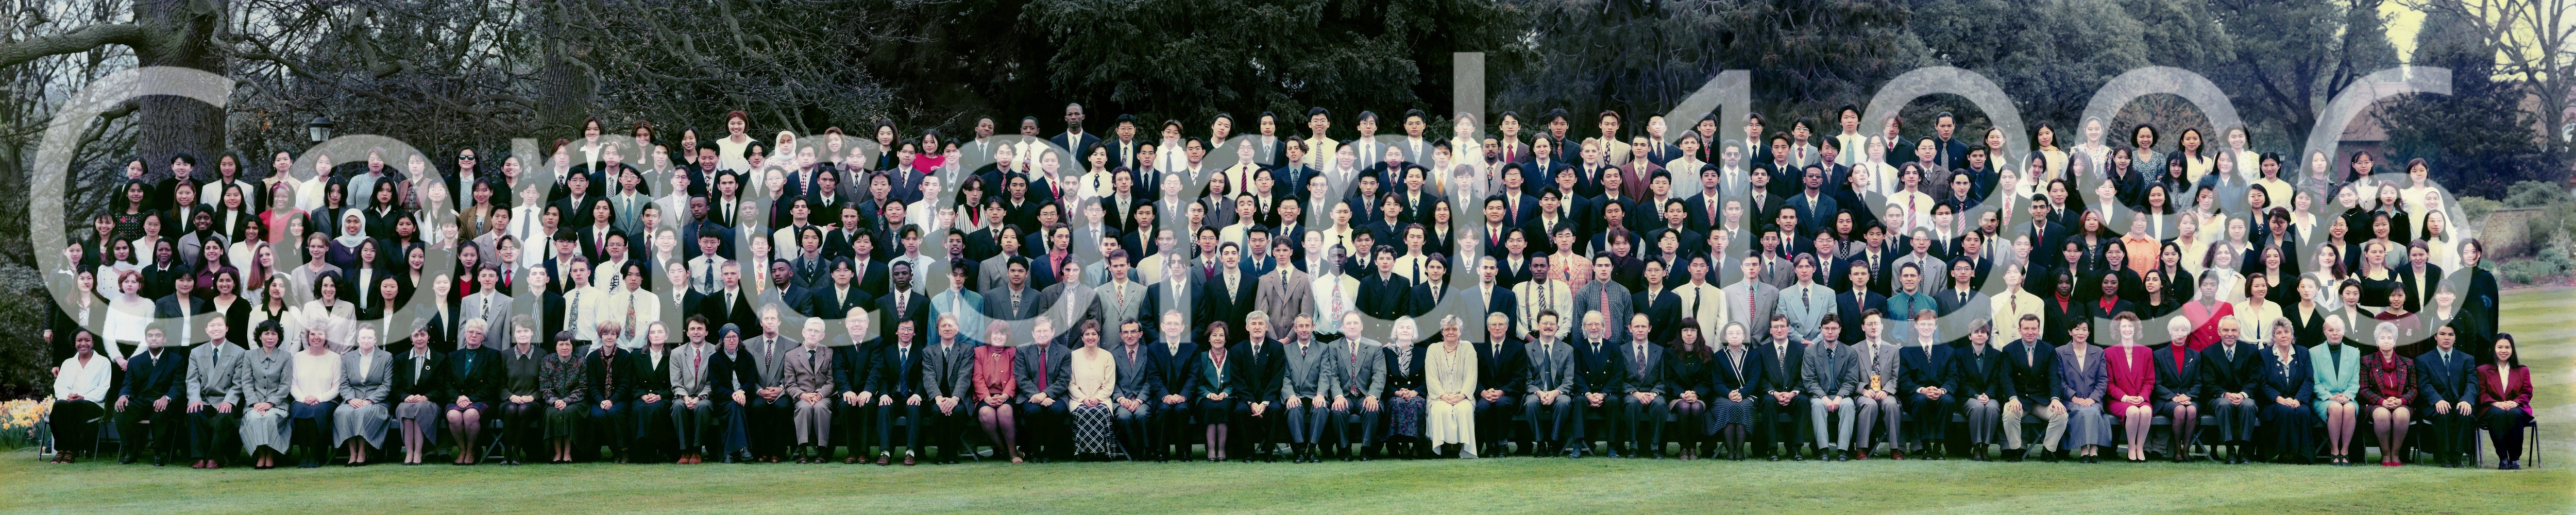 1996 Official School Photograph